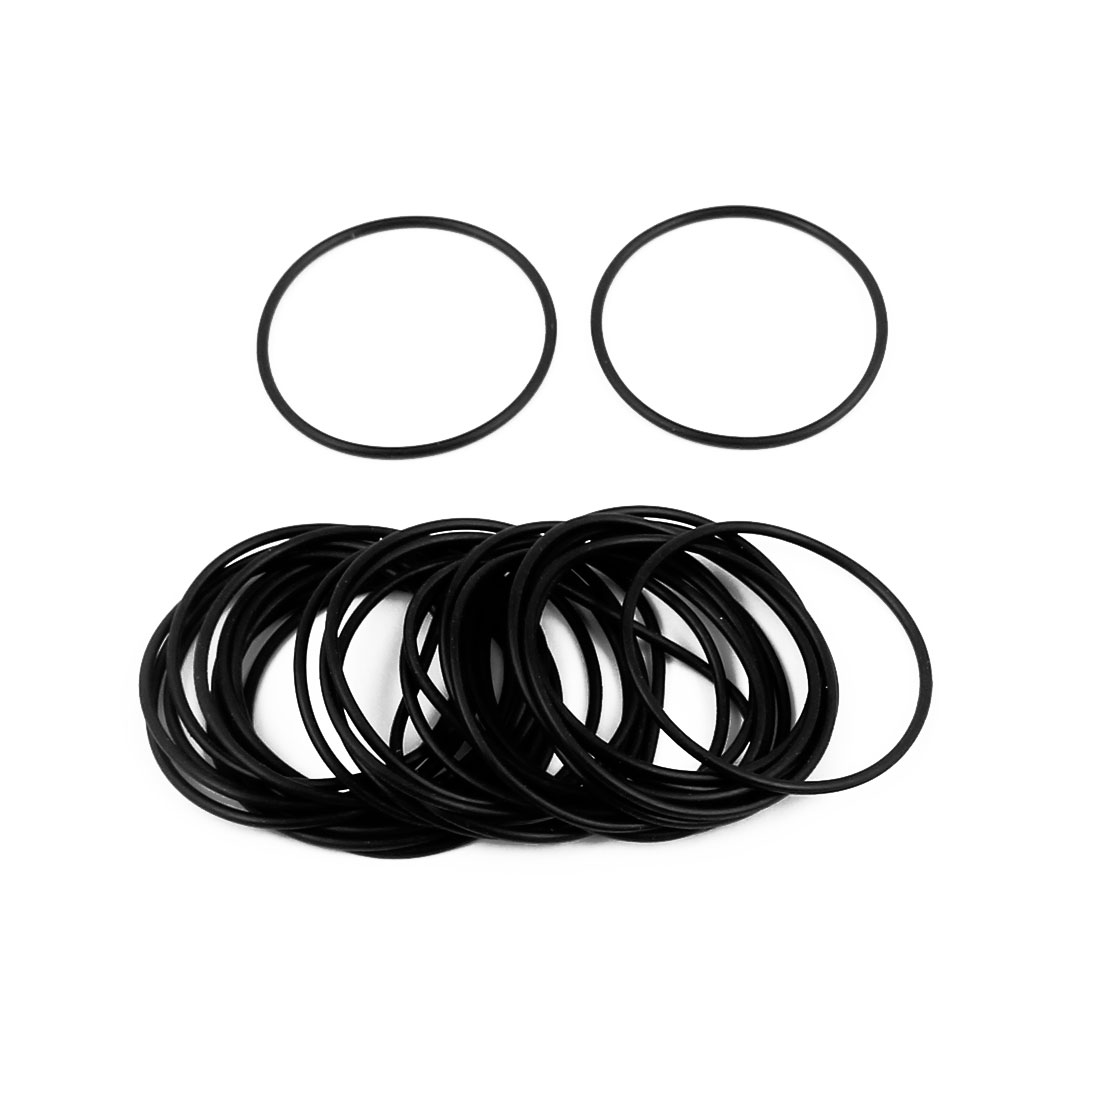 30 Pcs 37mm x 1.5mm Rubber O-rings NBR Heat Resistant Sealing Ring Grommets